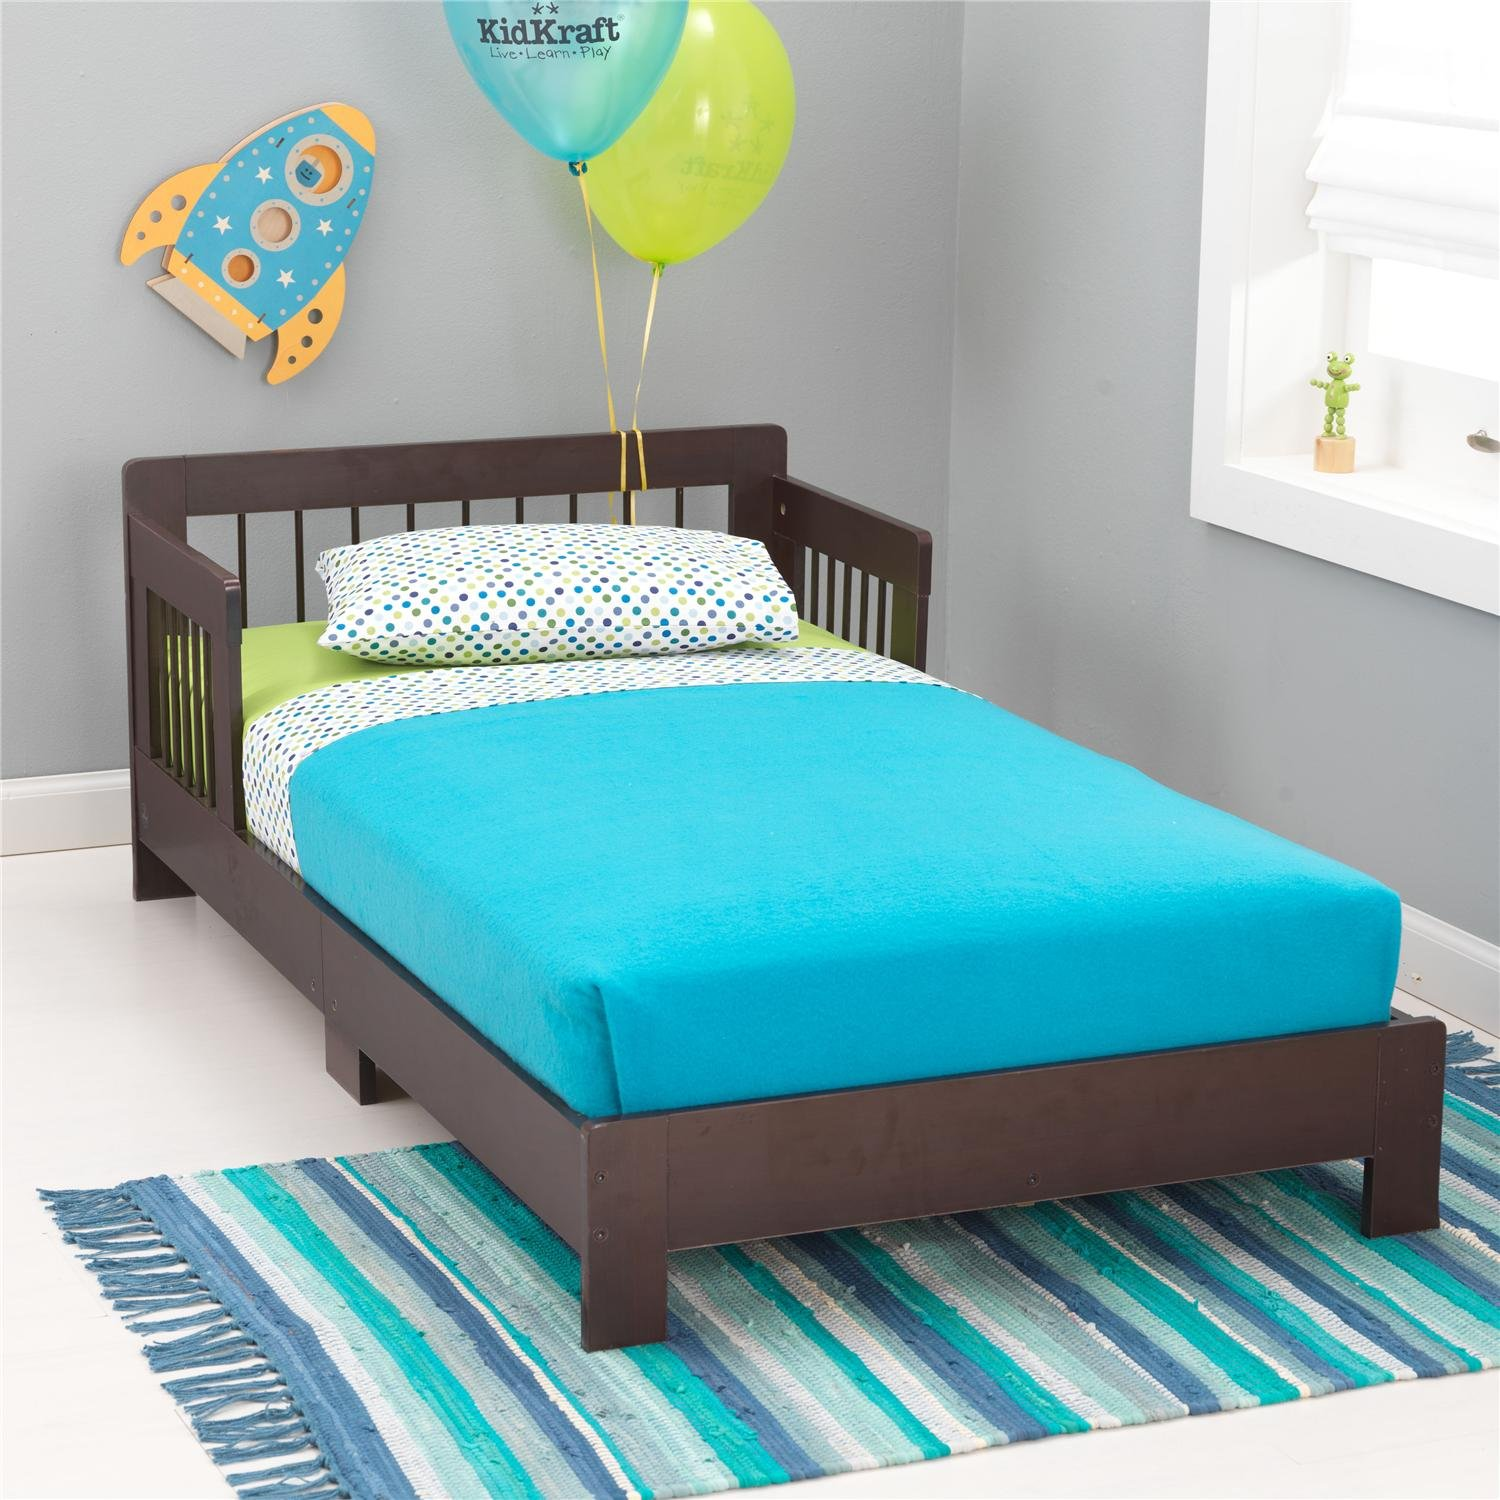 Amazon.com: KidKraft Toddler Houston Bed, Espresso: Toys & Games